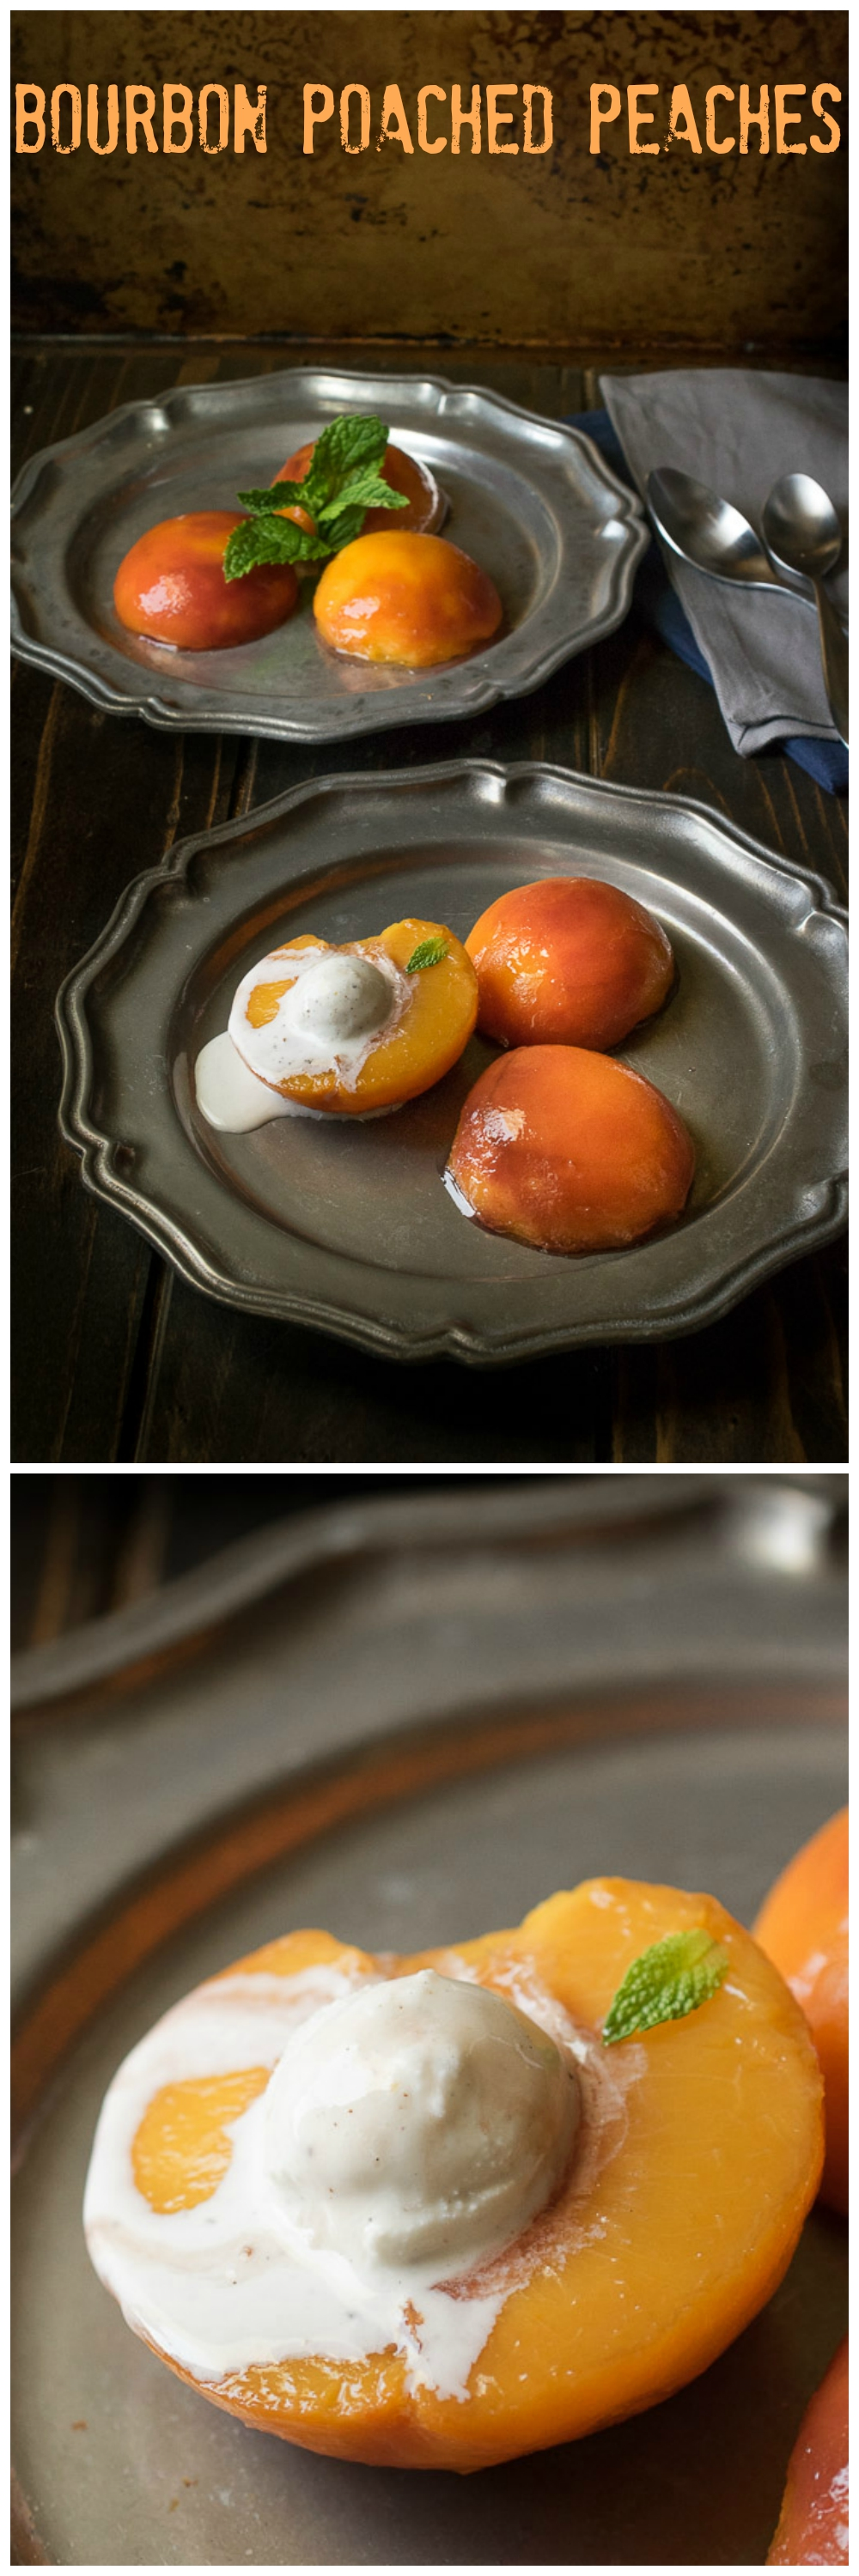 Bourbon poached peaches - Culinary Ginger